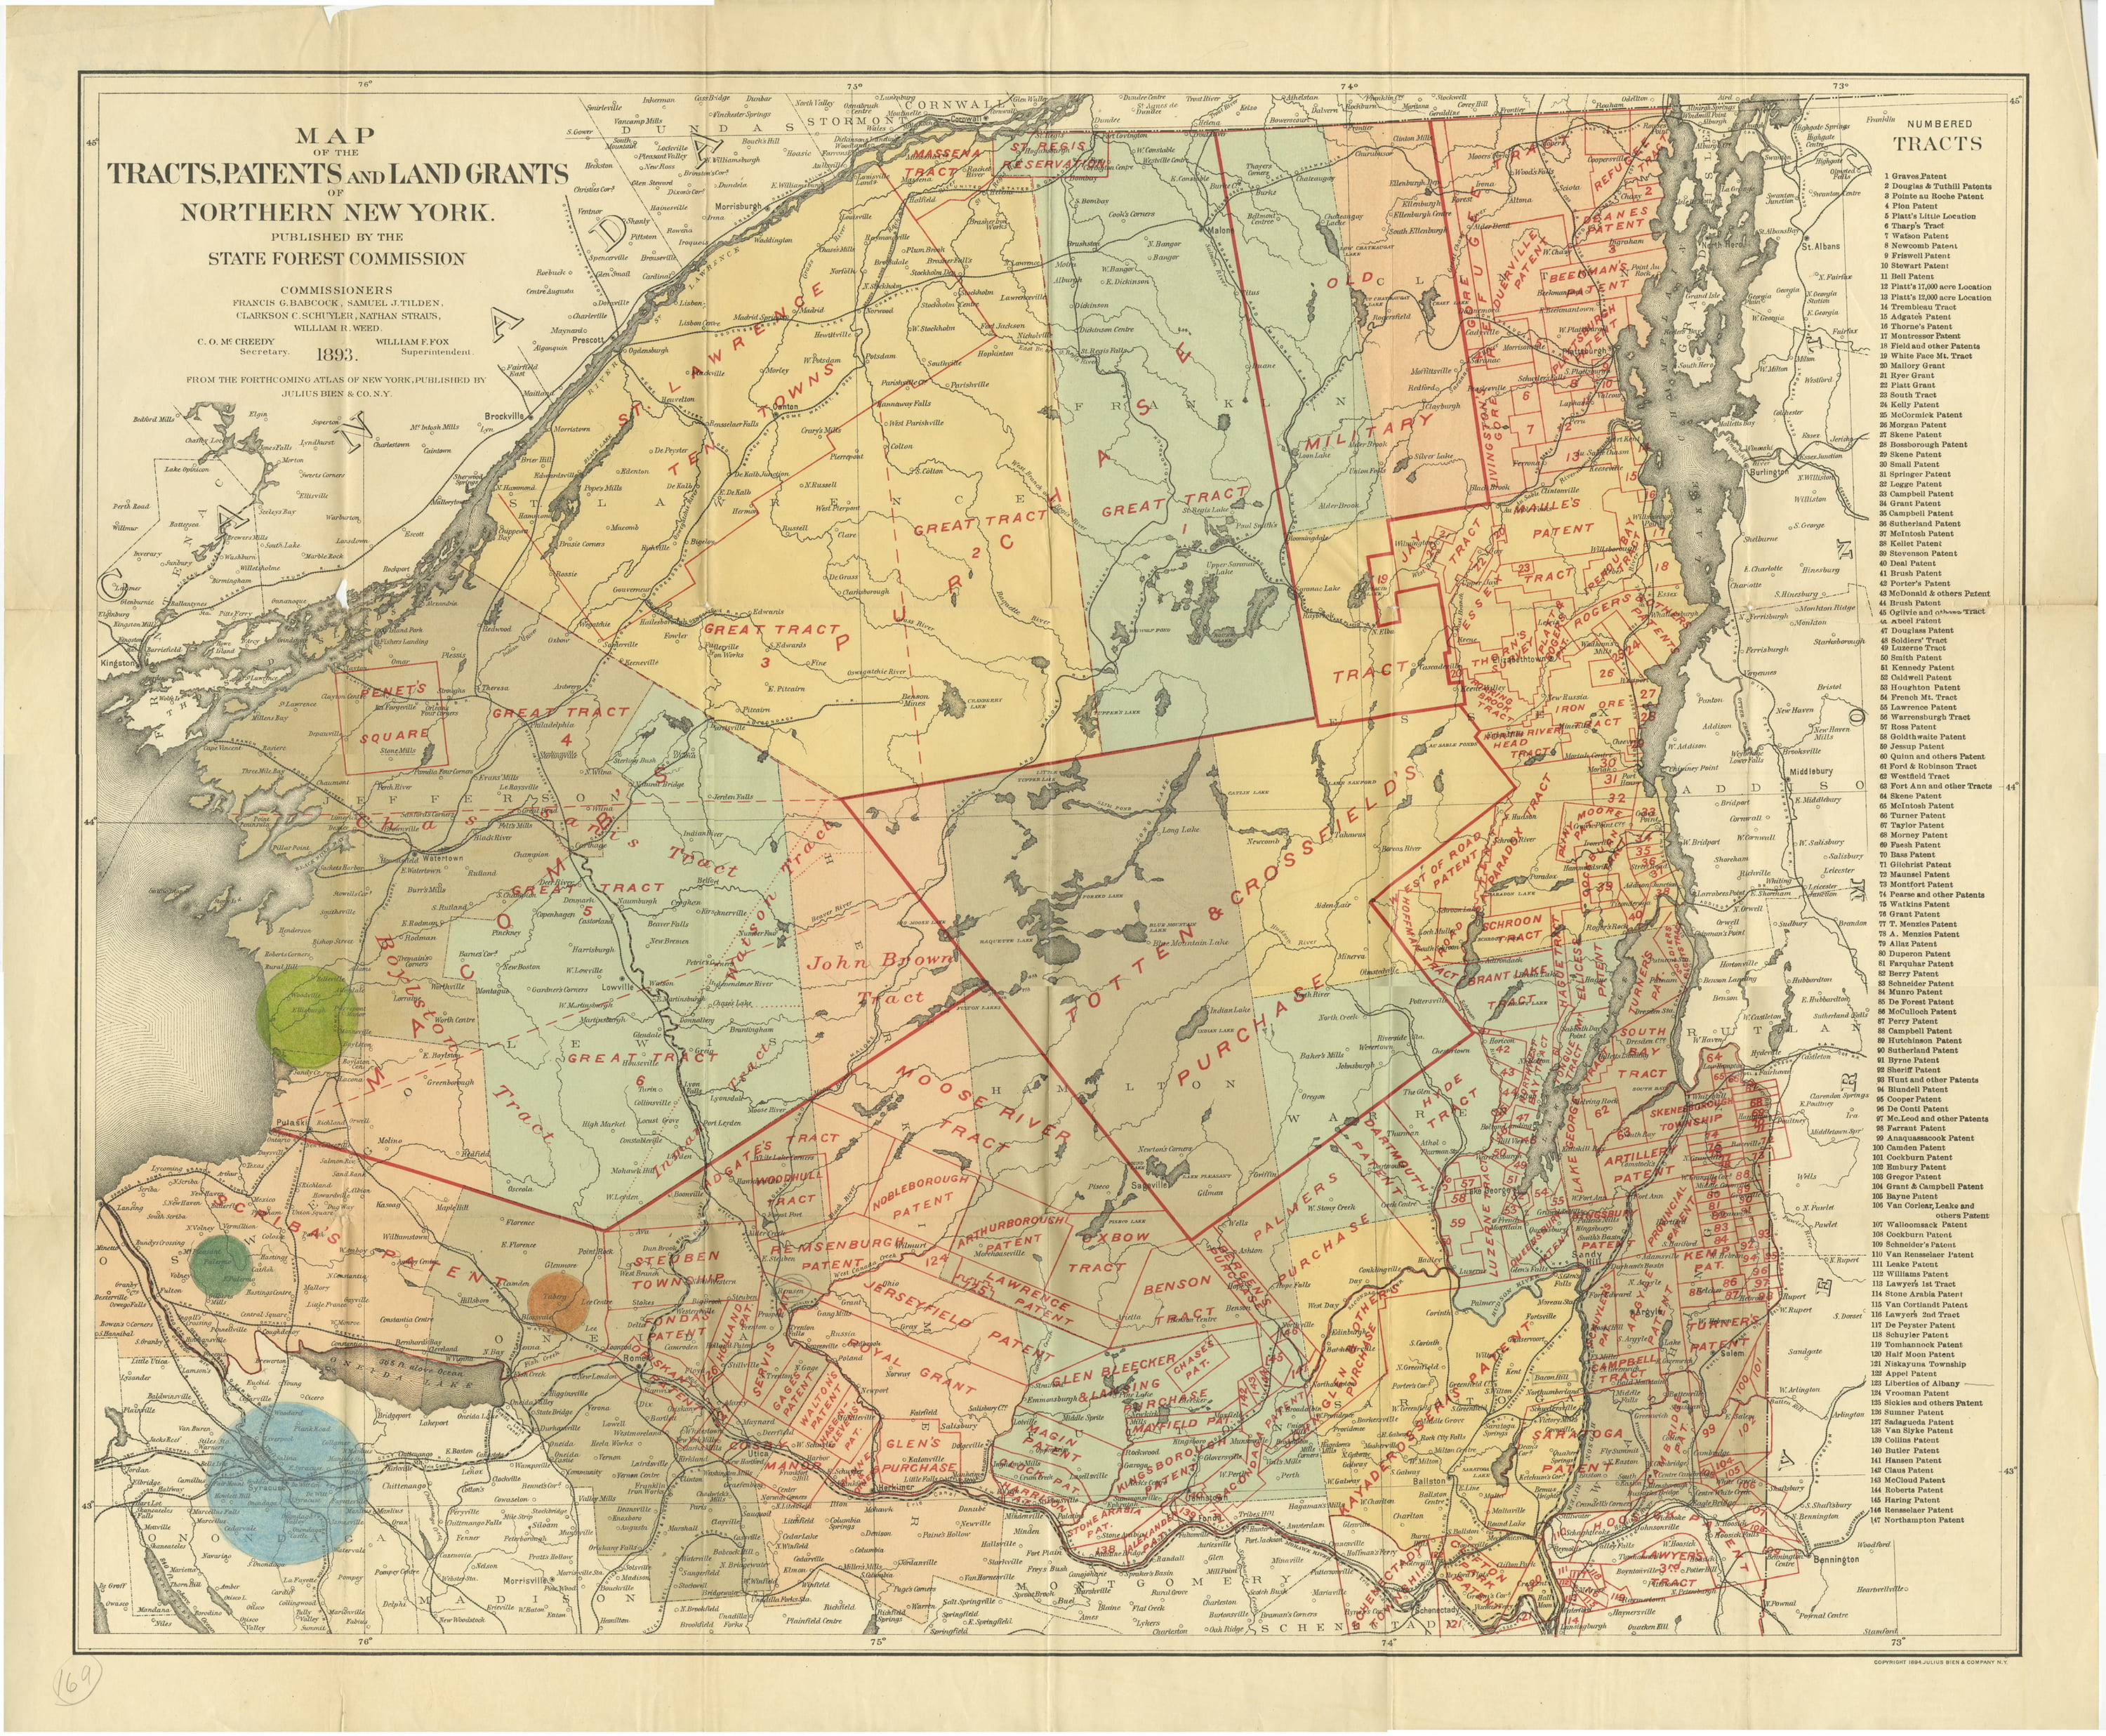 Art Exhibition Historical Maps Of The Adirondack Region